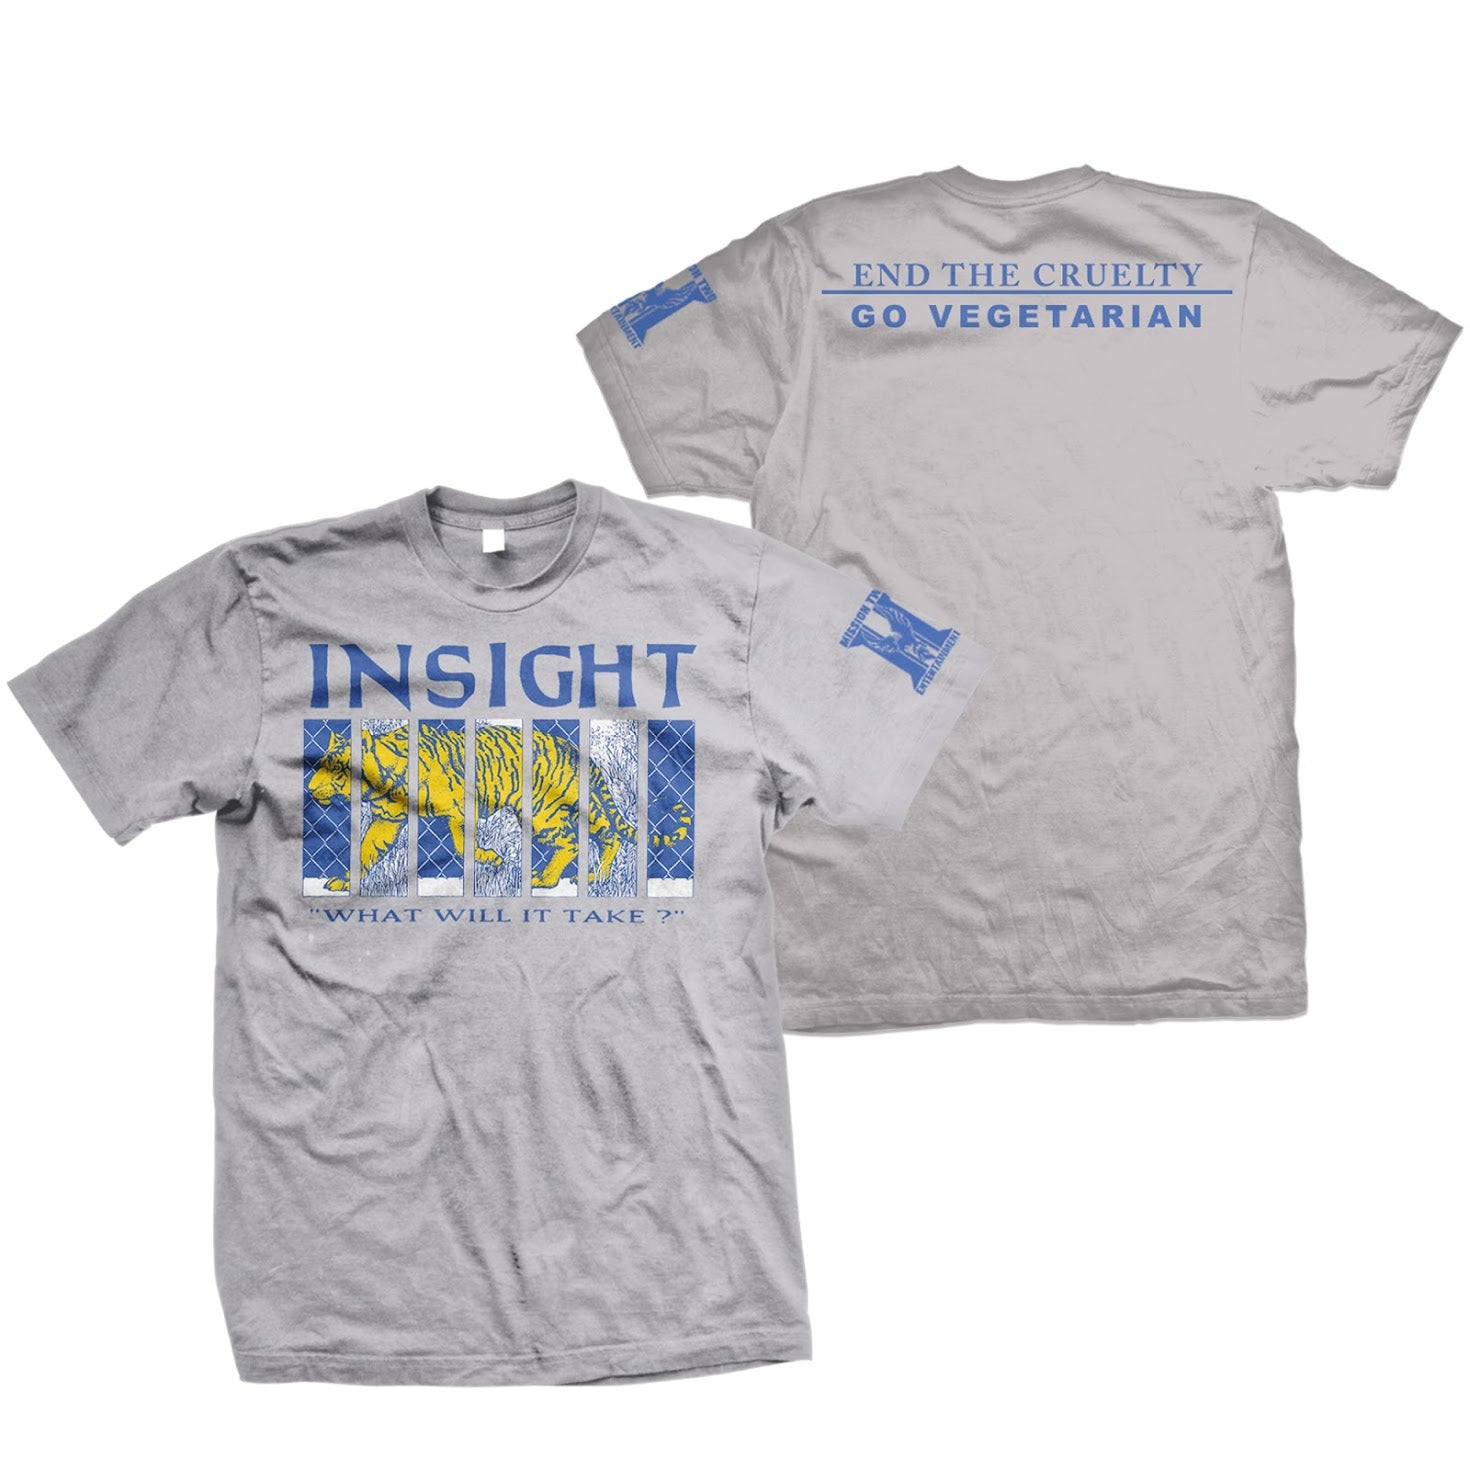 INSIGHT 'End The Cruelty' T-Shirt, sports grey